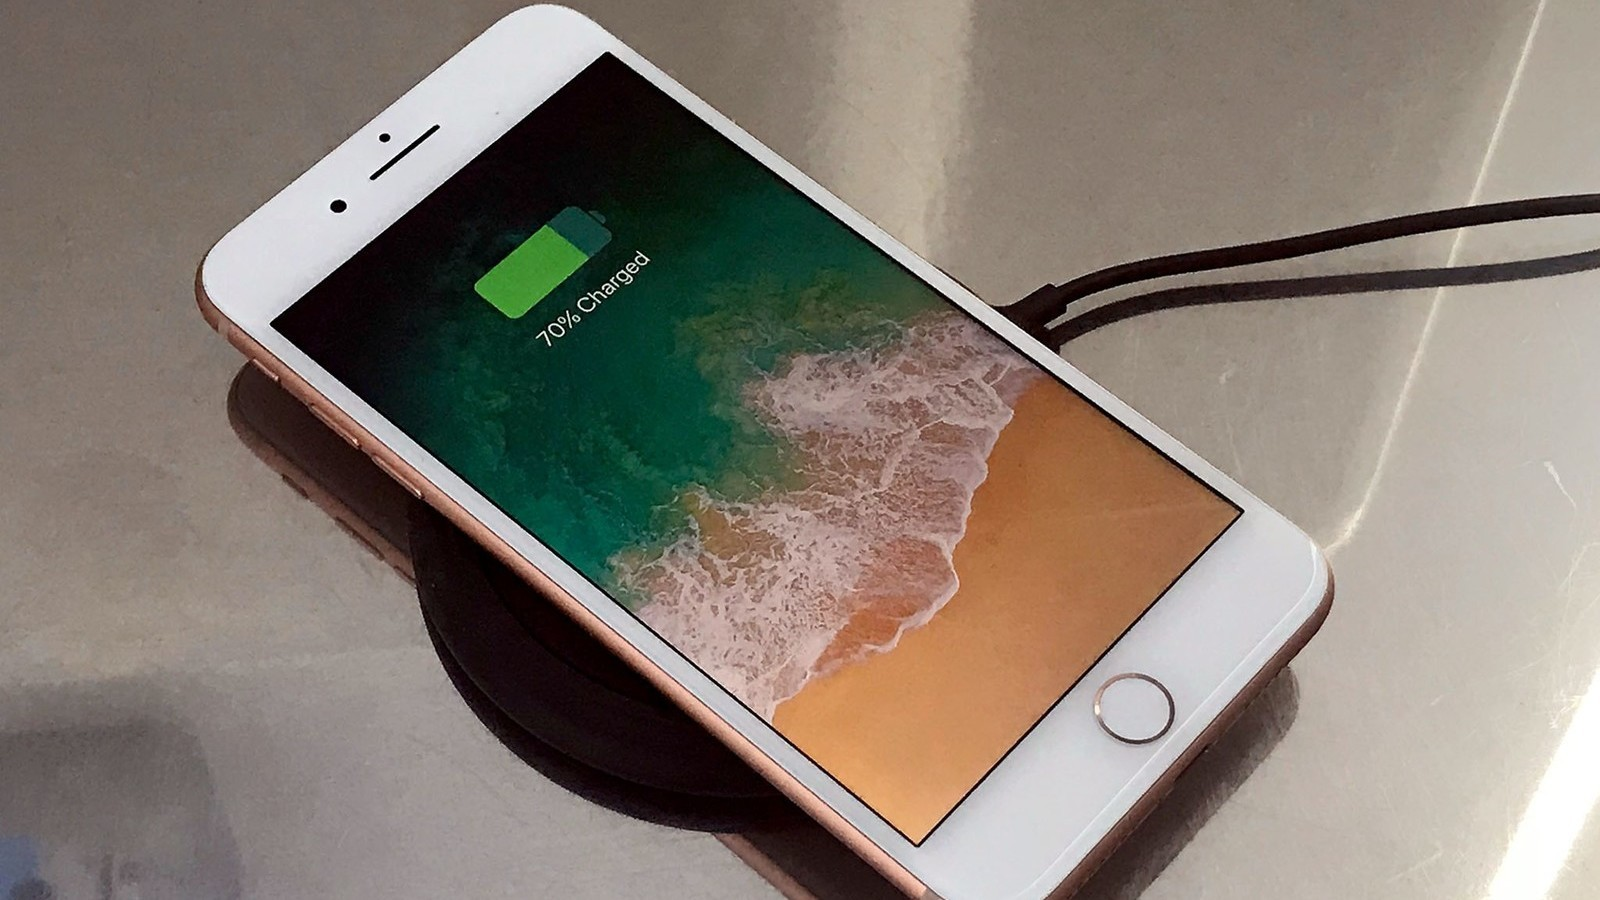 iPhone 8 on wireless charging pad